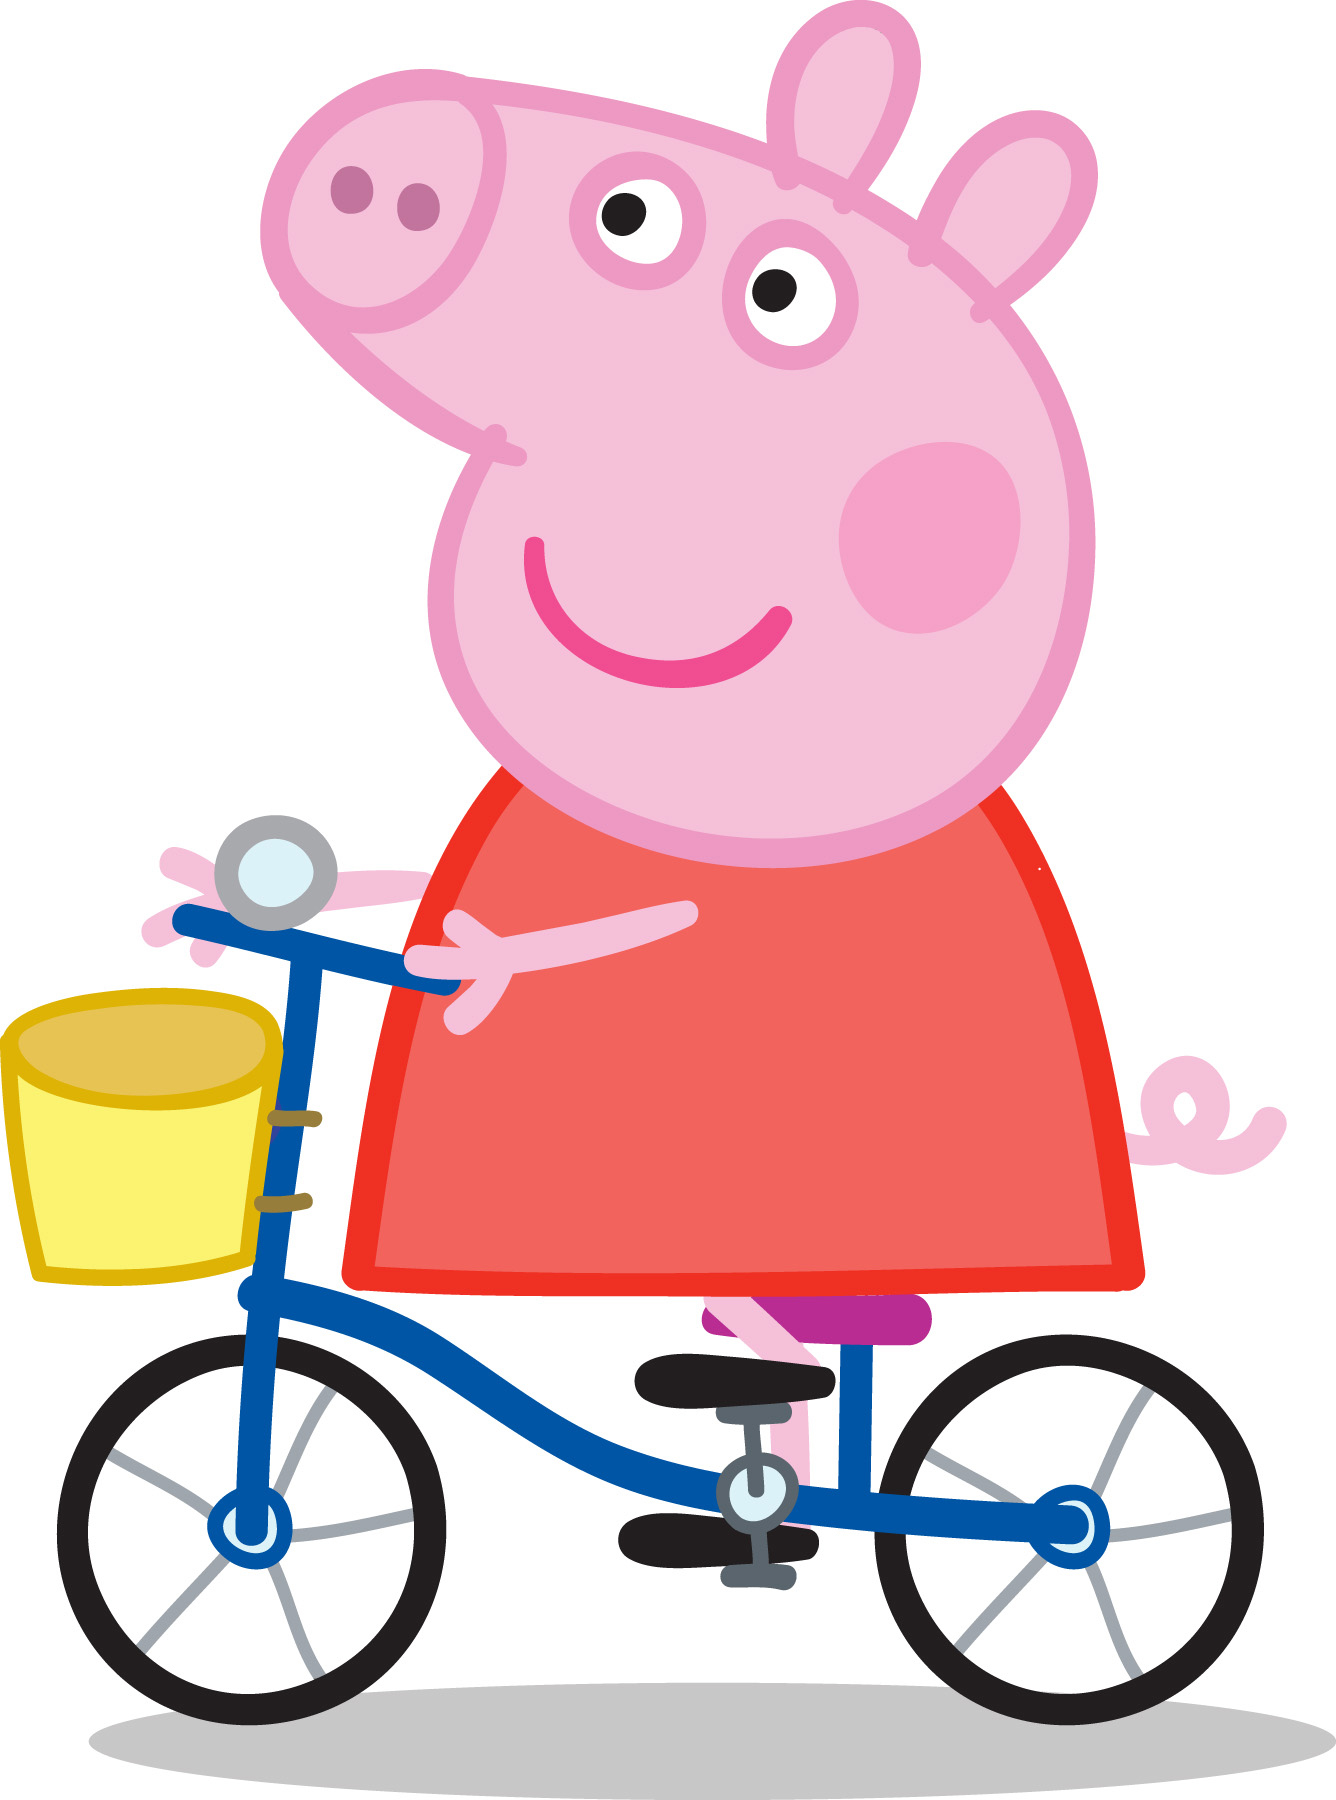 Peppa Pig rides her bicyle in a scene from one of the  Tickle U  series of cartoons.